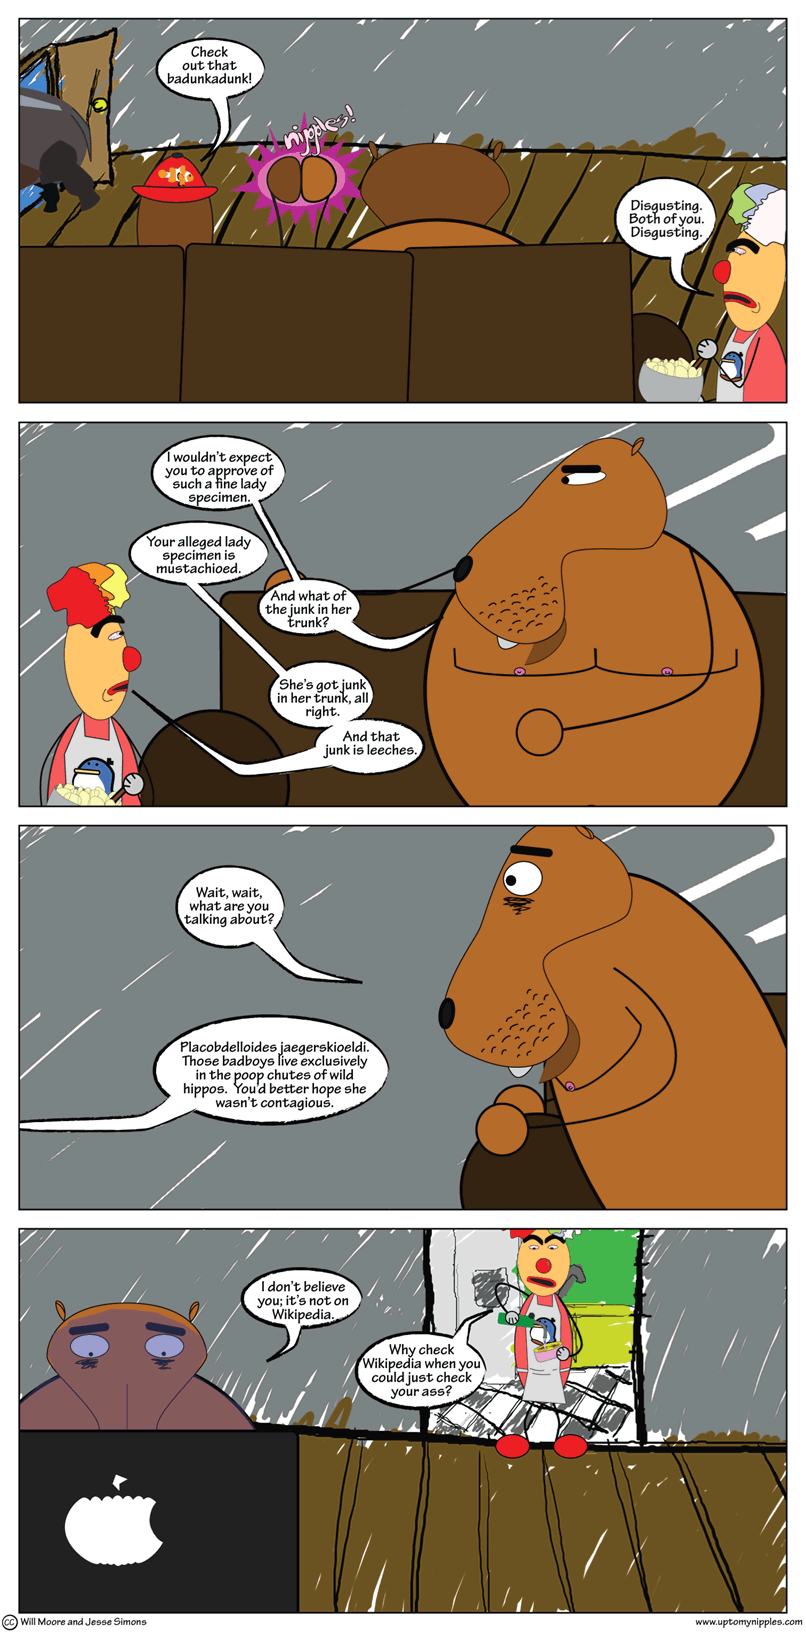 The Junk in the Trunk comic